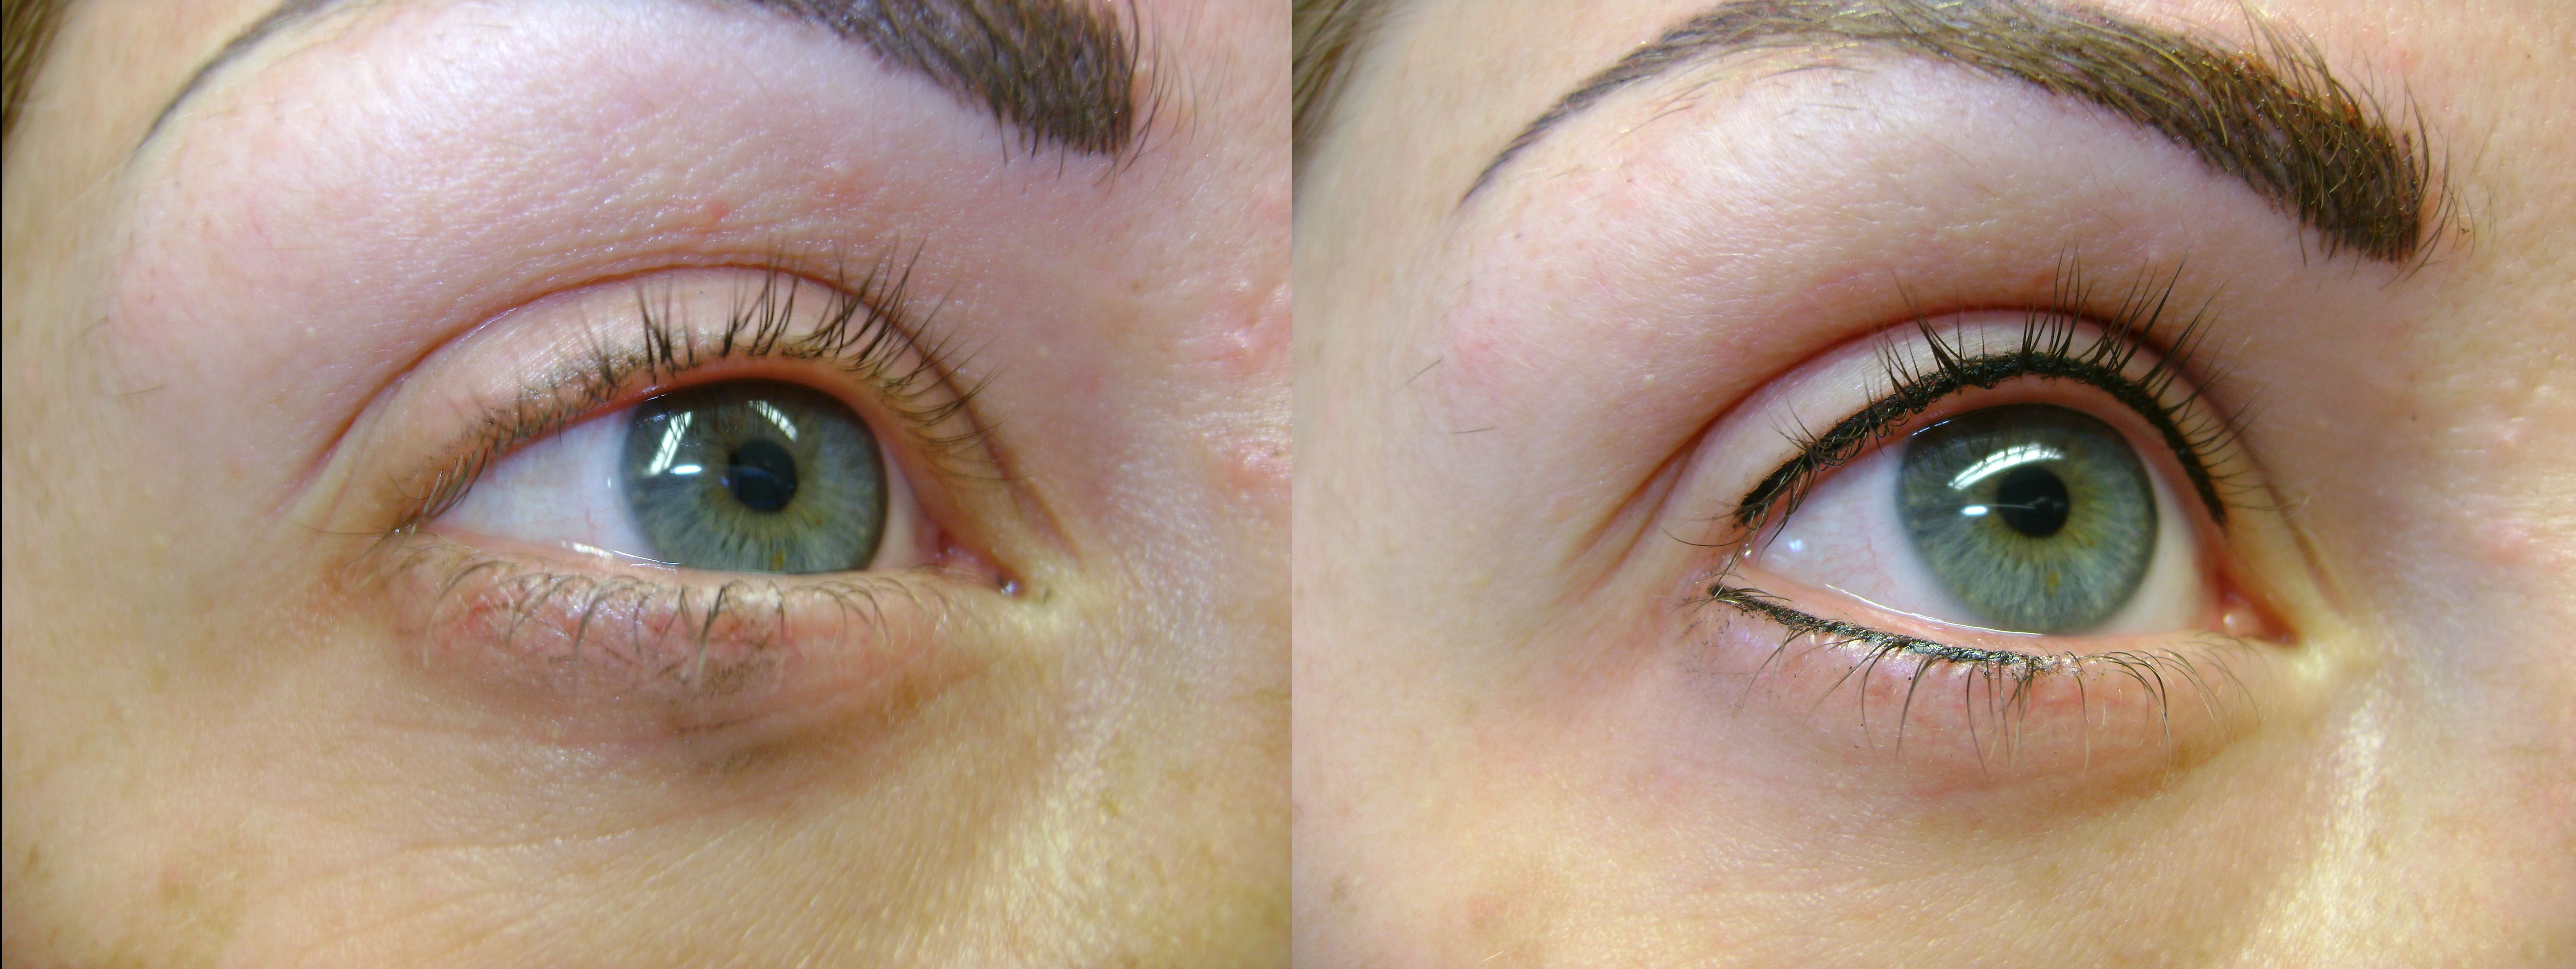 Eyeliner Sheila Bella Permanent Makeup And Microblading